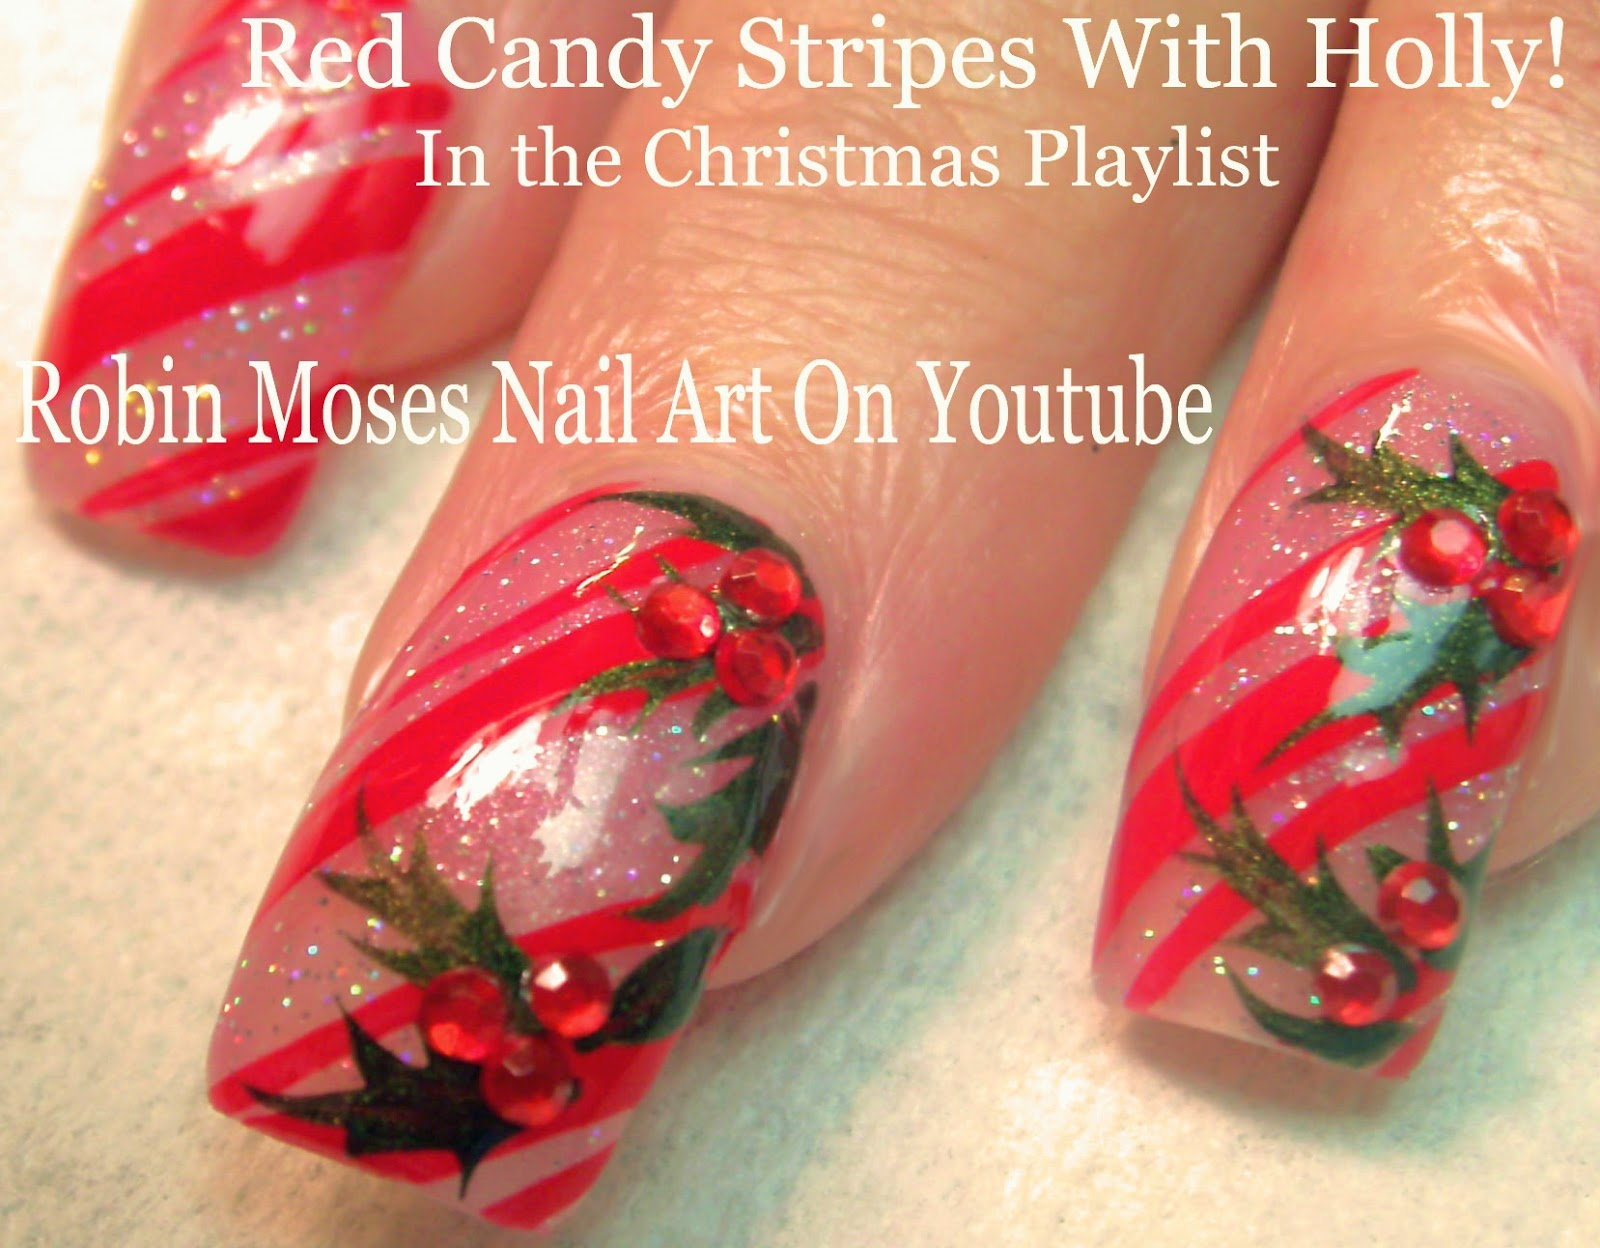 Robin moses nail art christmas nail art cute diy xmas nails here is my christmas nail art playlist full of xmas nail ideas to keep you painting all season long these diy nail art designs are right from my shop on prinsesfo Choice Image